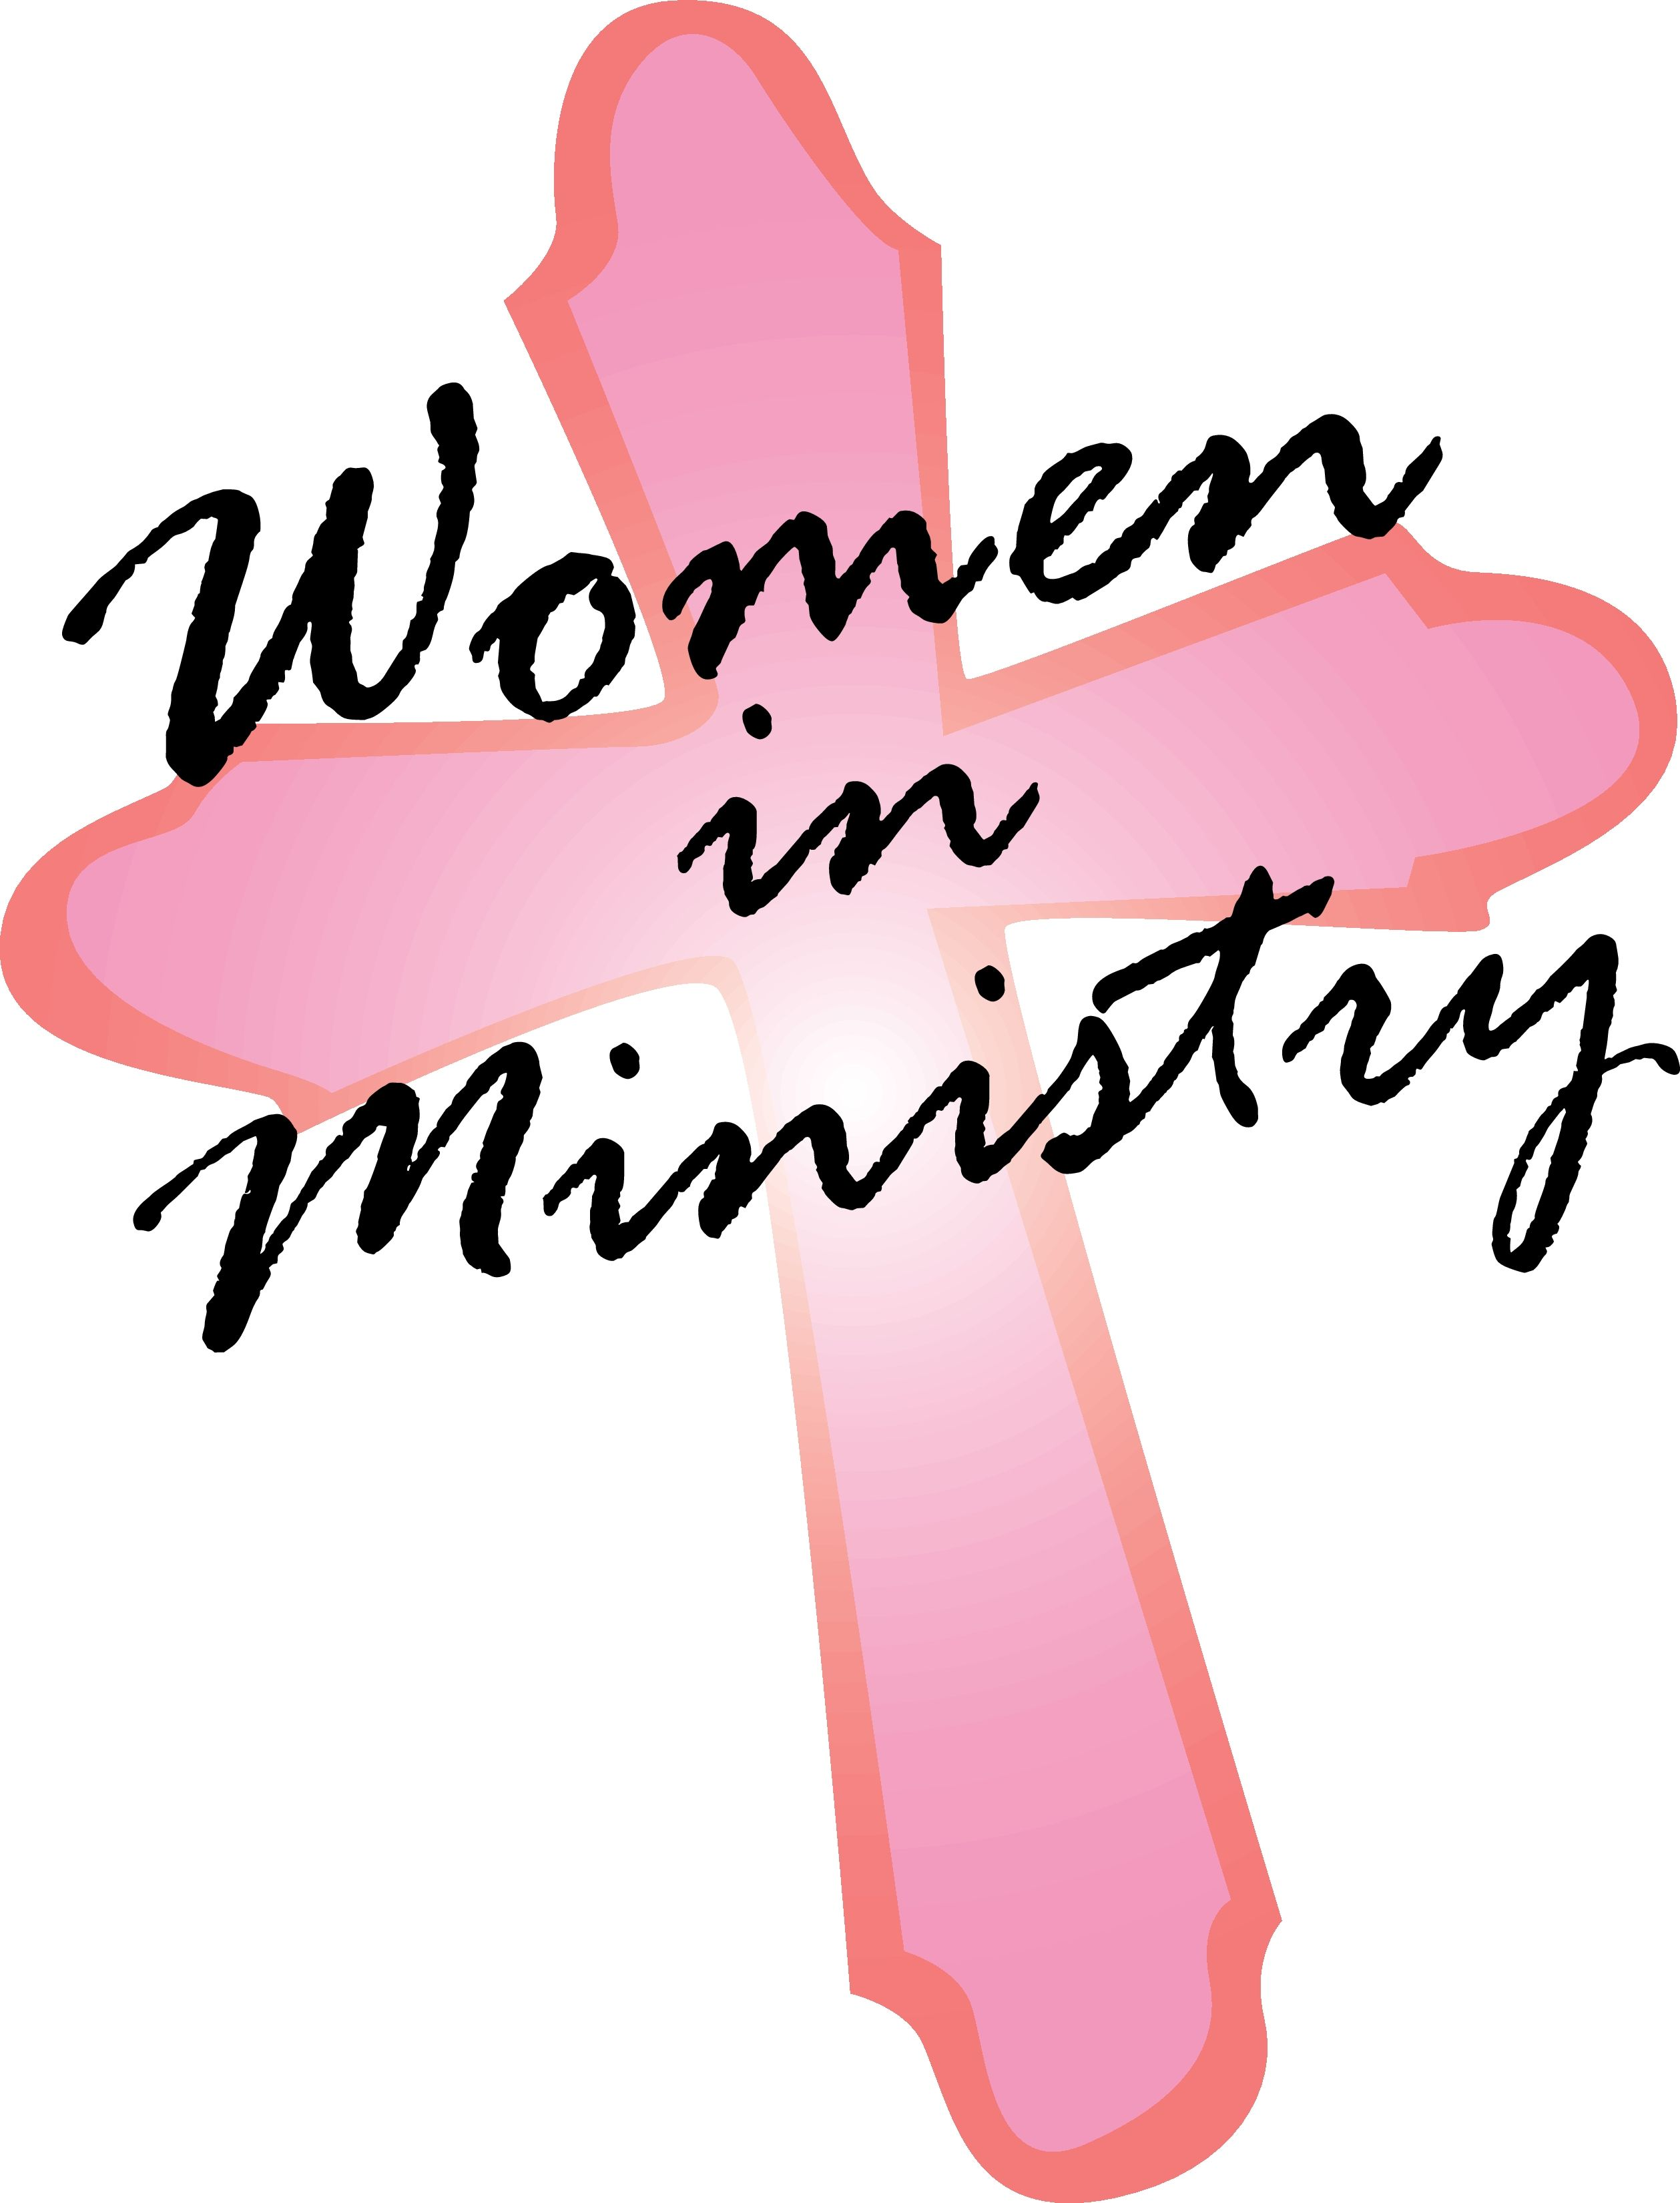 Women s ministry clipart silhouette